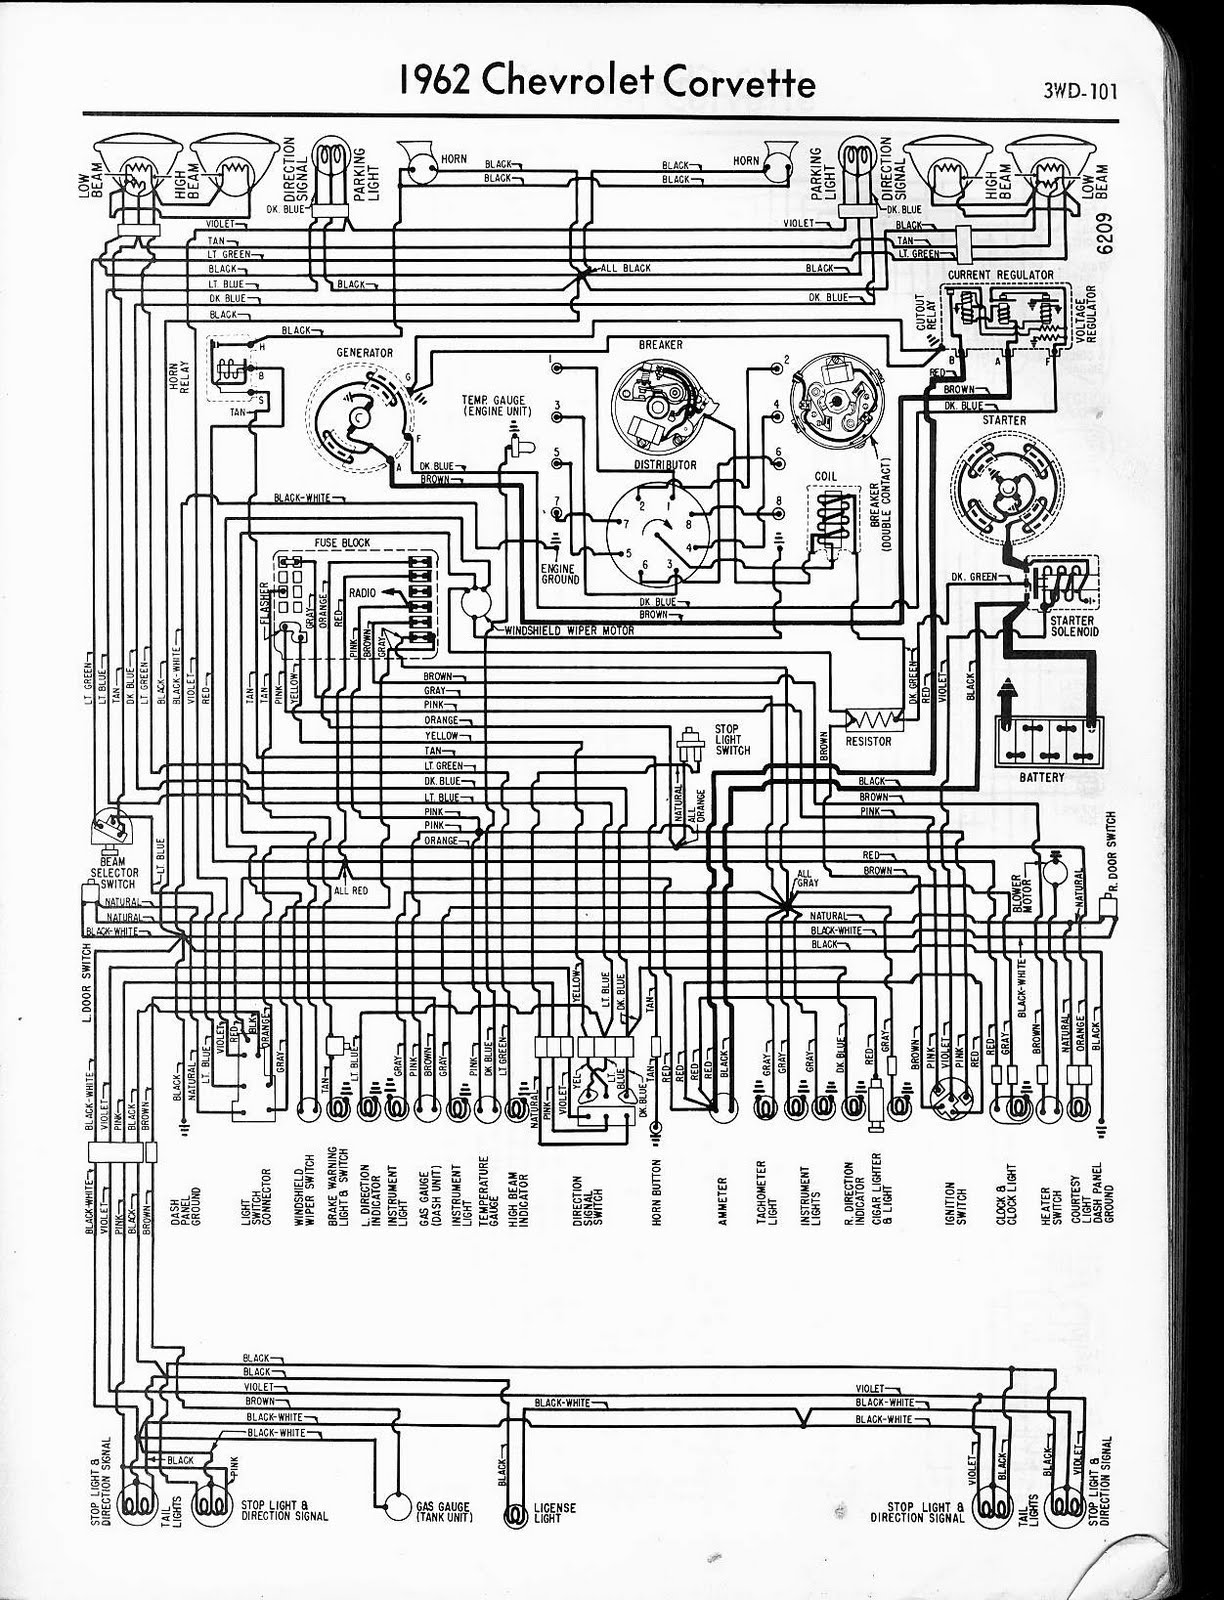 chevy corvette wiring diagram jpg wiring diagram for 1966 corvette euro the wiring diagram 1224 x 1600